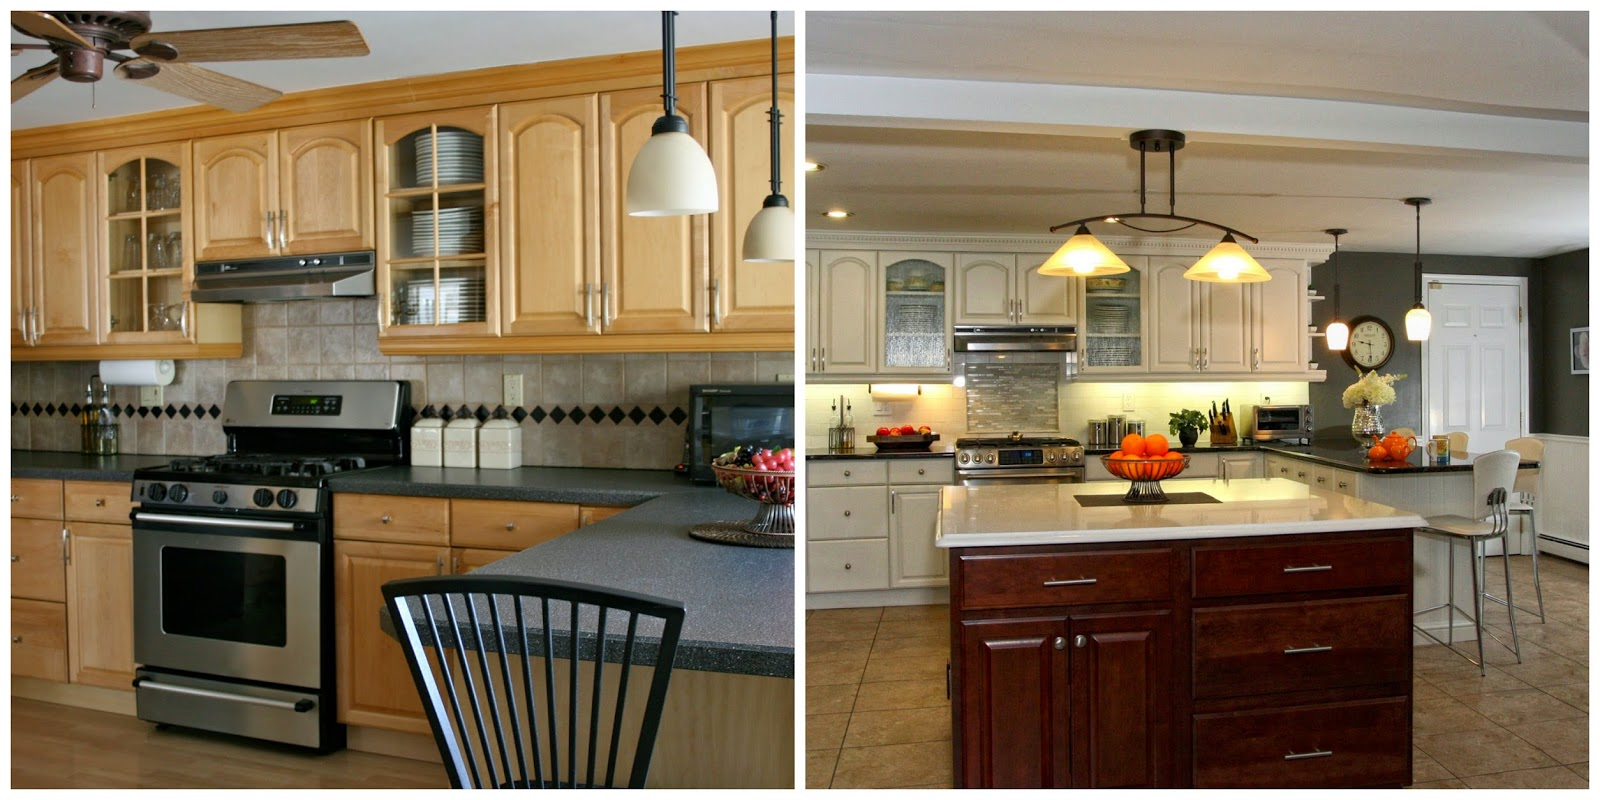 Quickest Way To Paint Kitchen Cabinets Abella Design Revamping Your Old Kitchen Cabinets